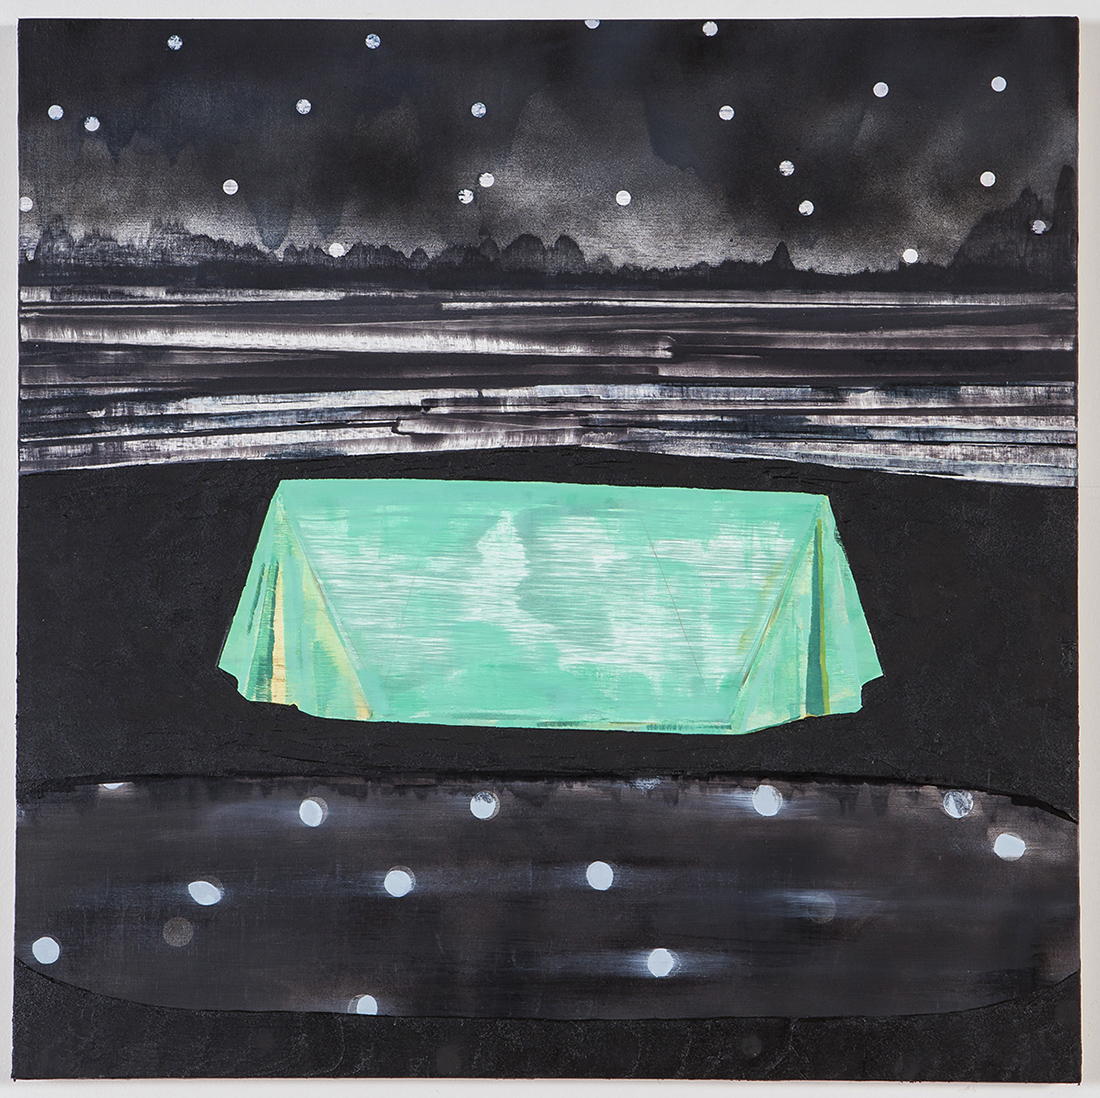 Oil painting with a green tent in a stark night landscape.